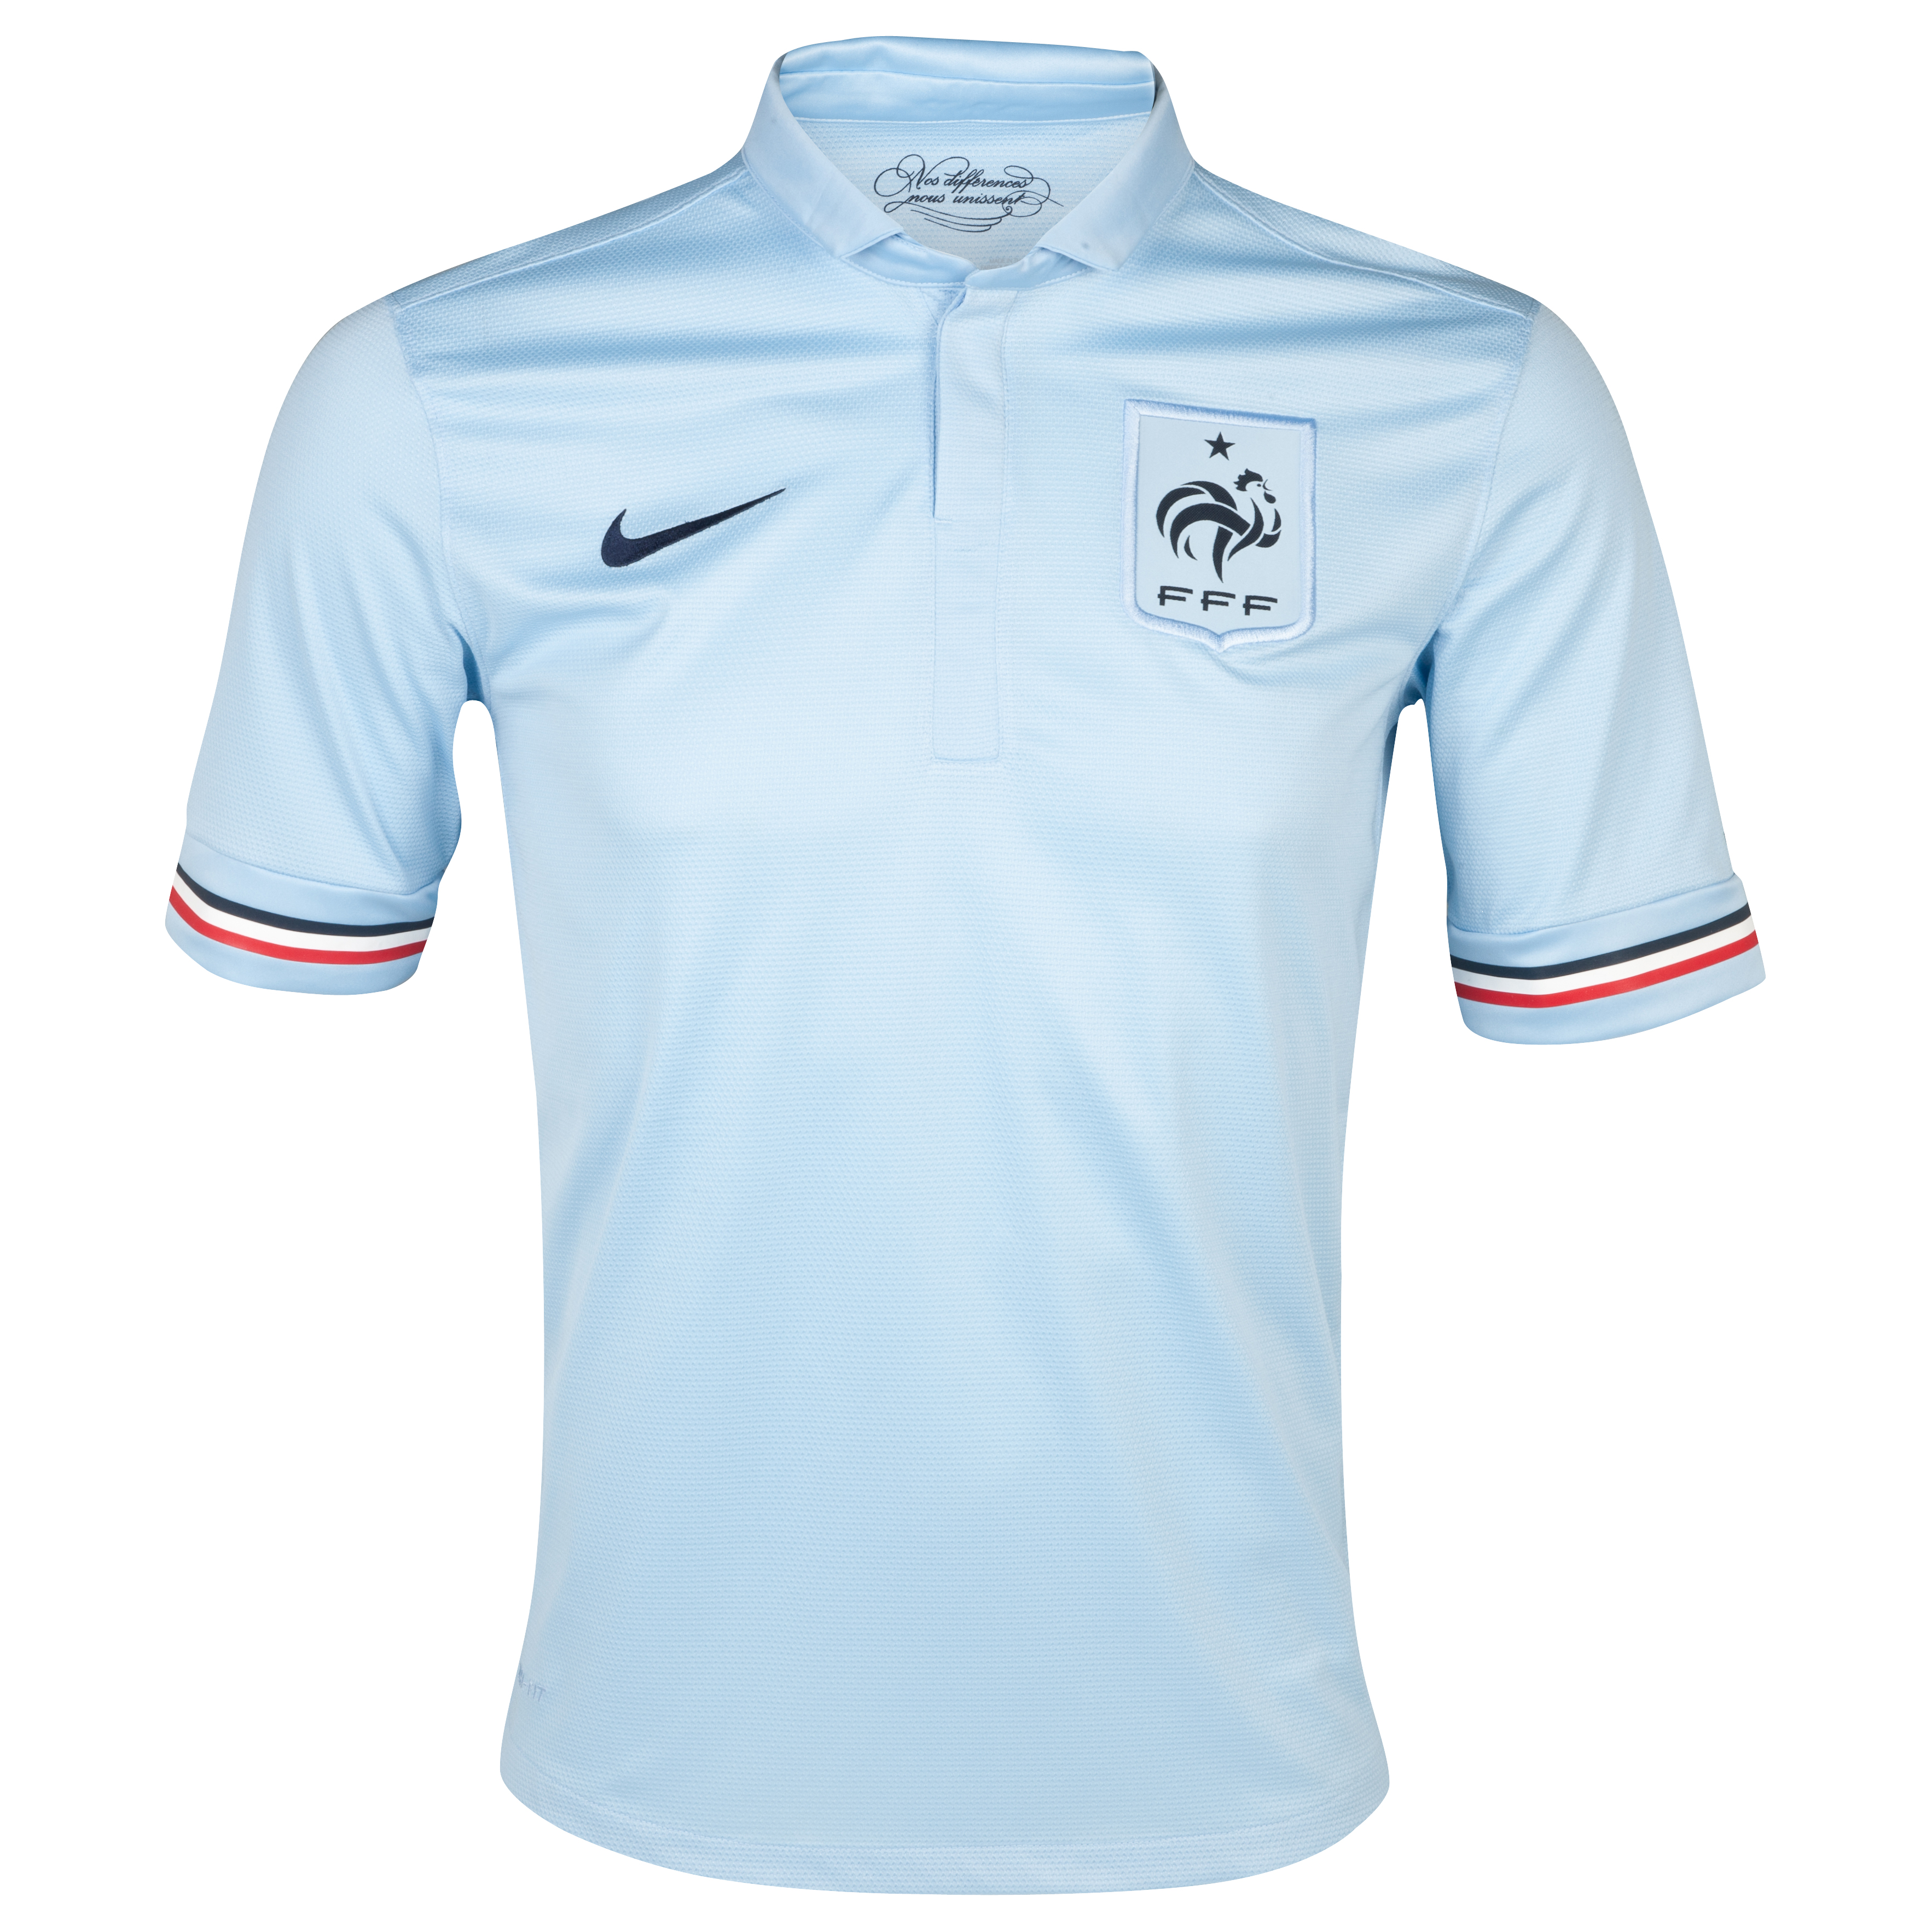 France Away Shirt 2013/14 Youths